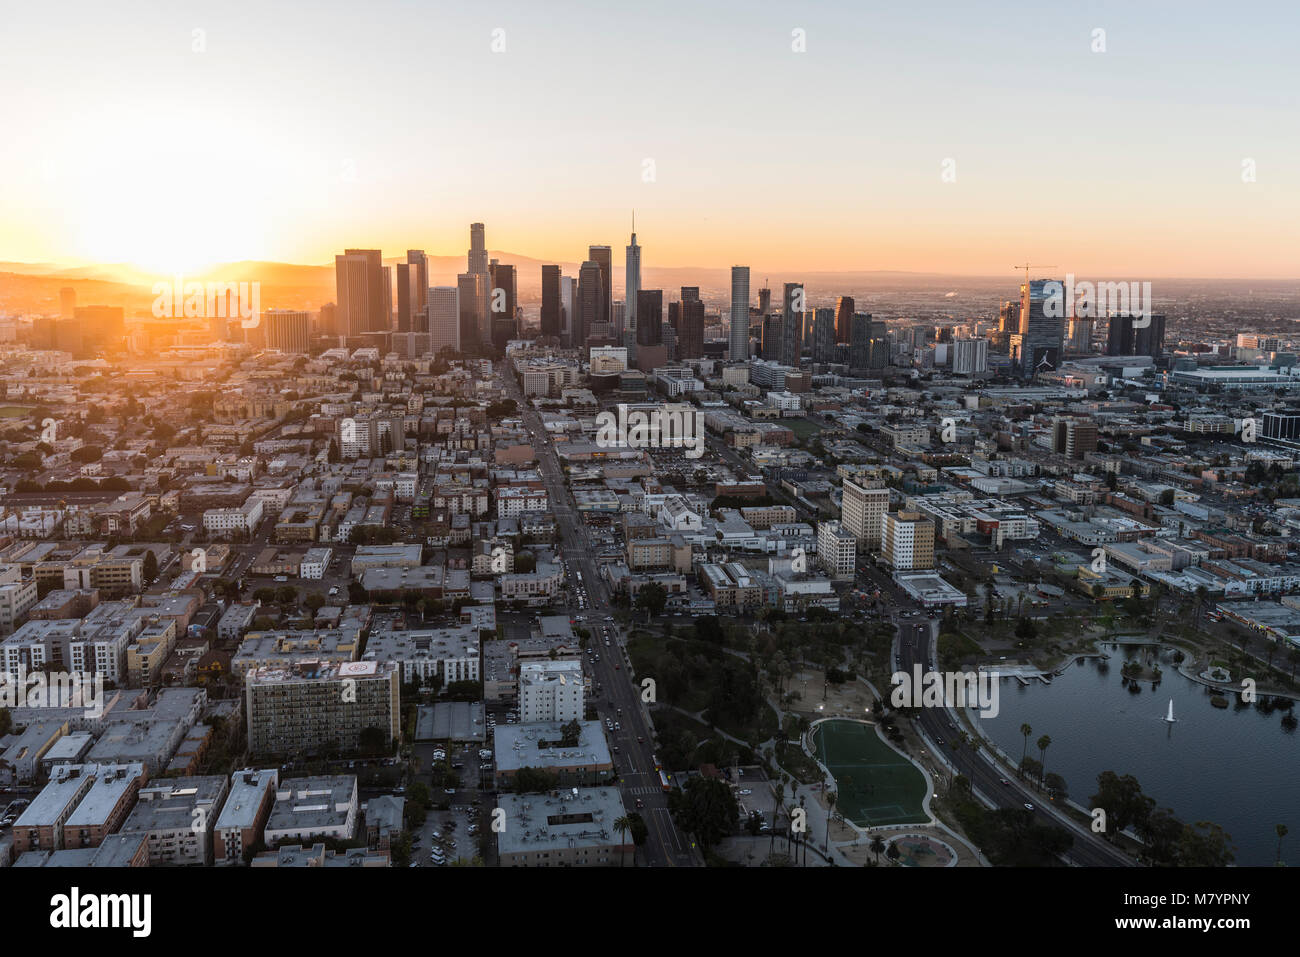 Los Angeles, California, USA - February 20, 2018:  Aerial morning view east on 6th street in the Westlake neighborhood - Stock Image